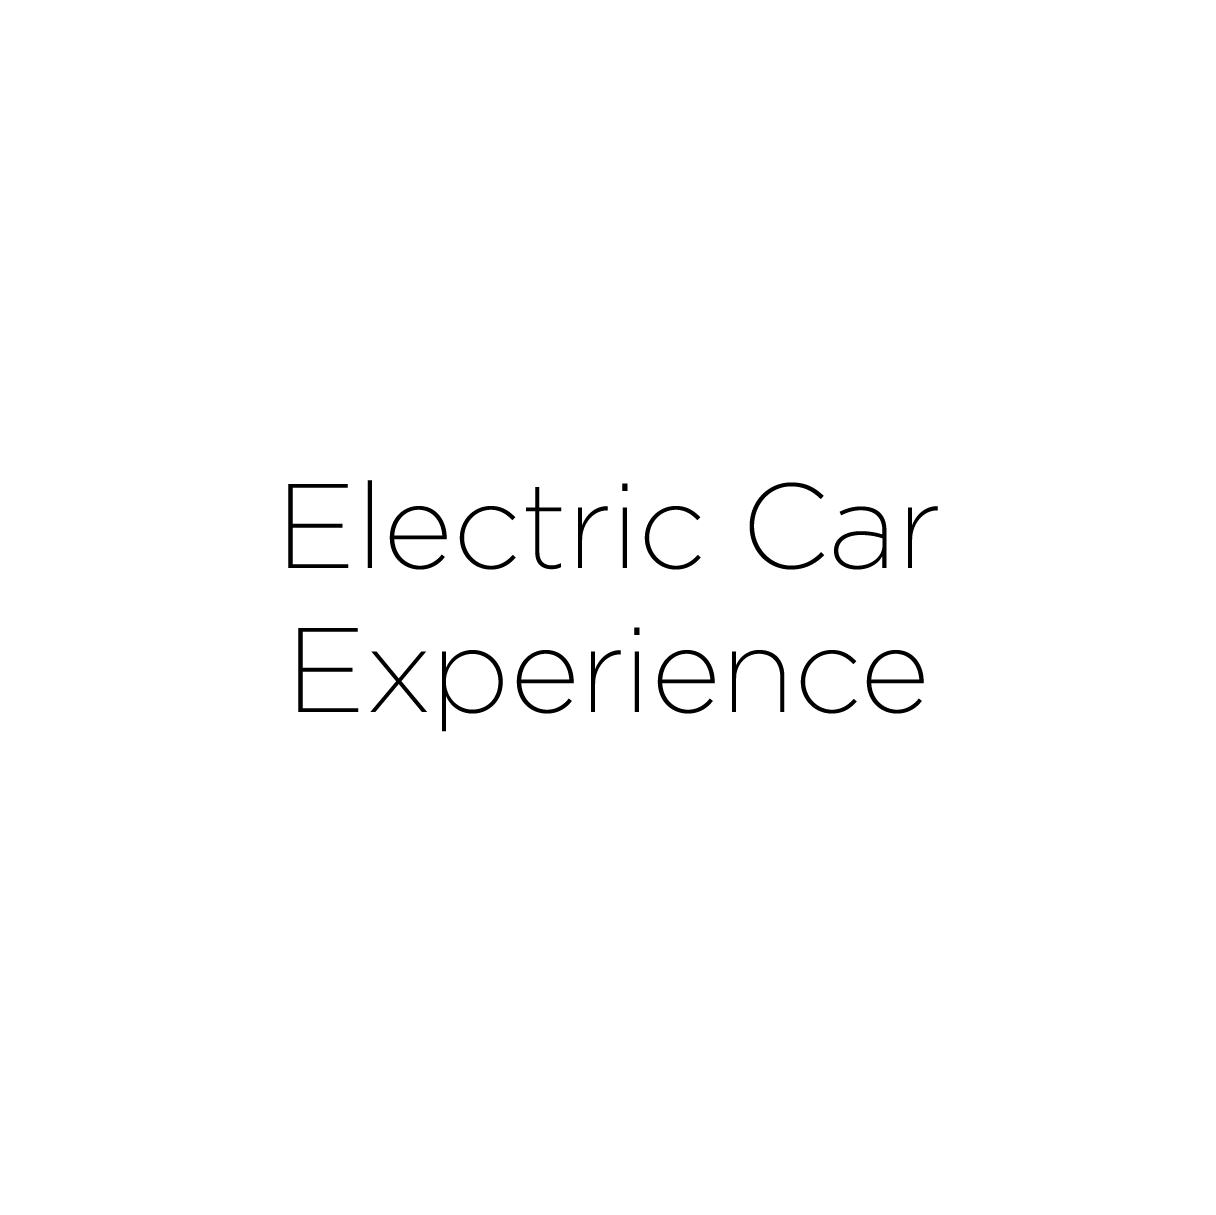 Electric Car Experience